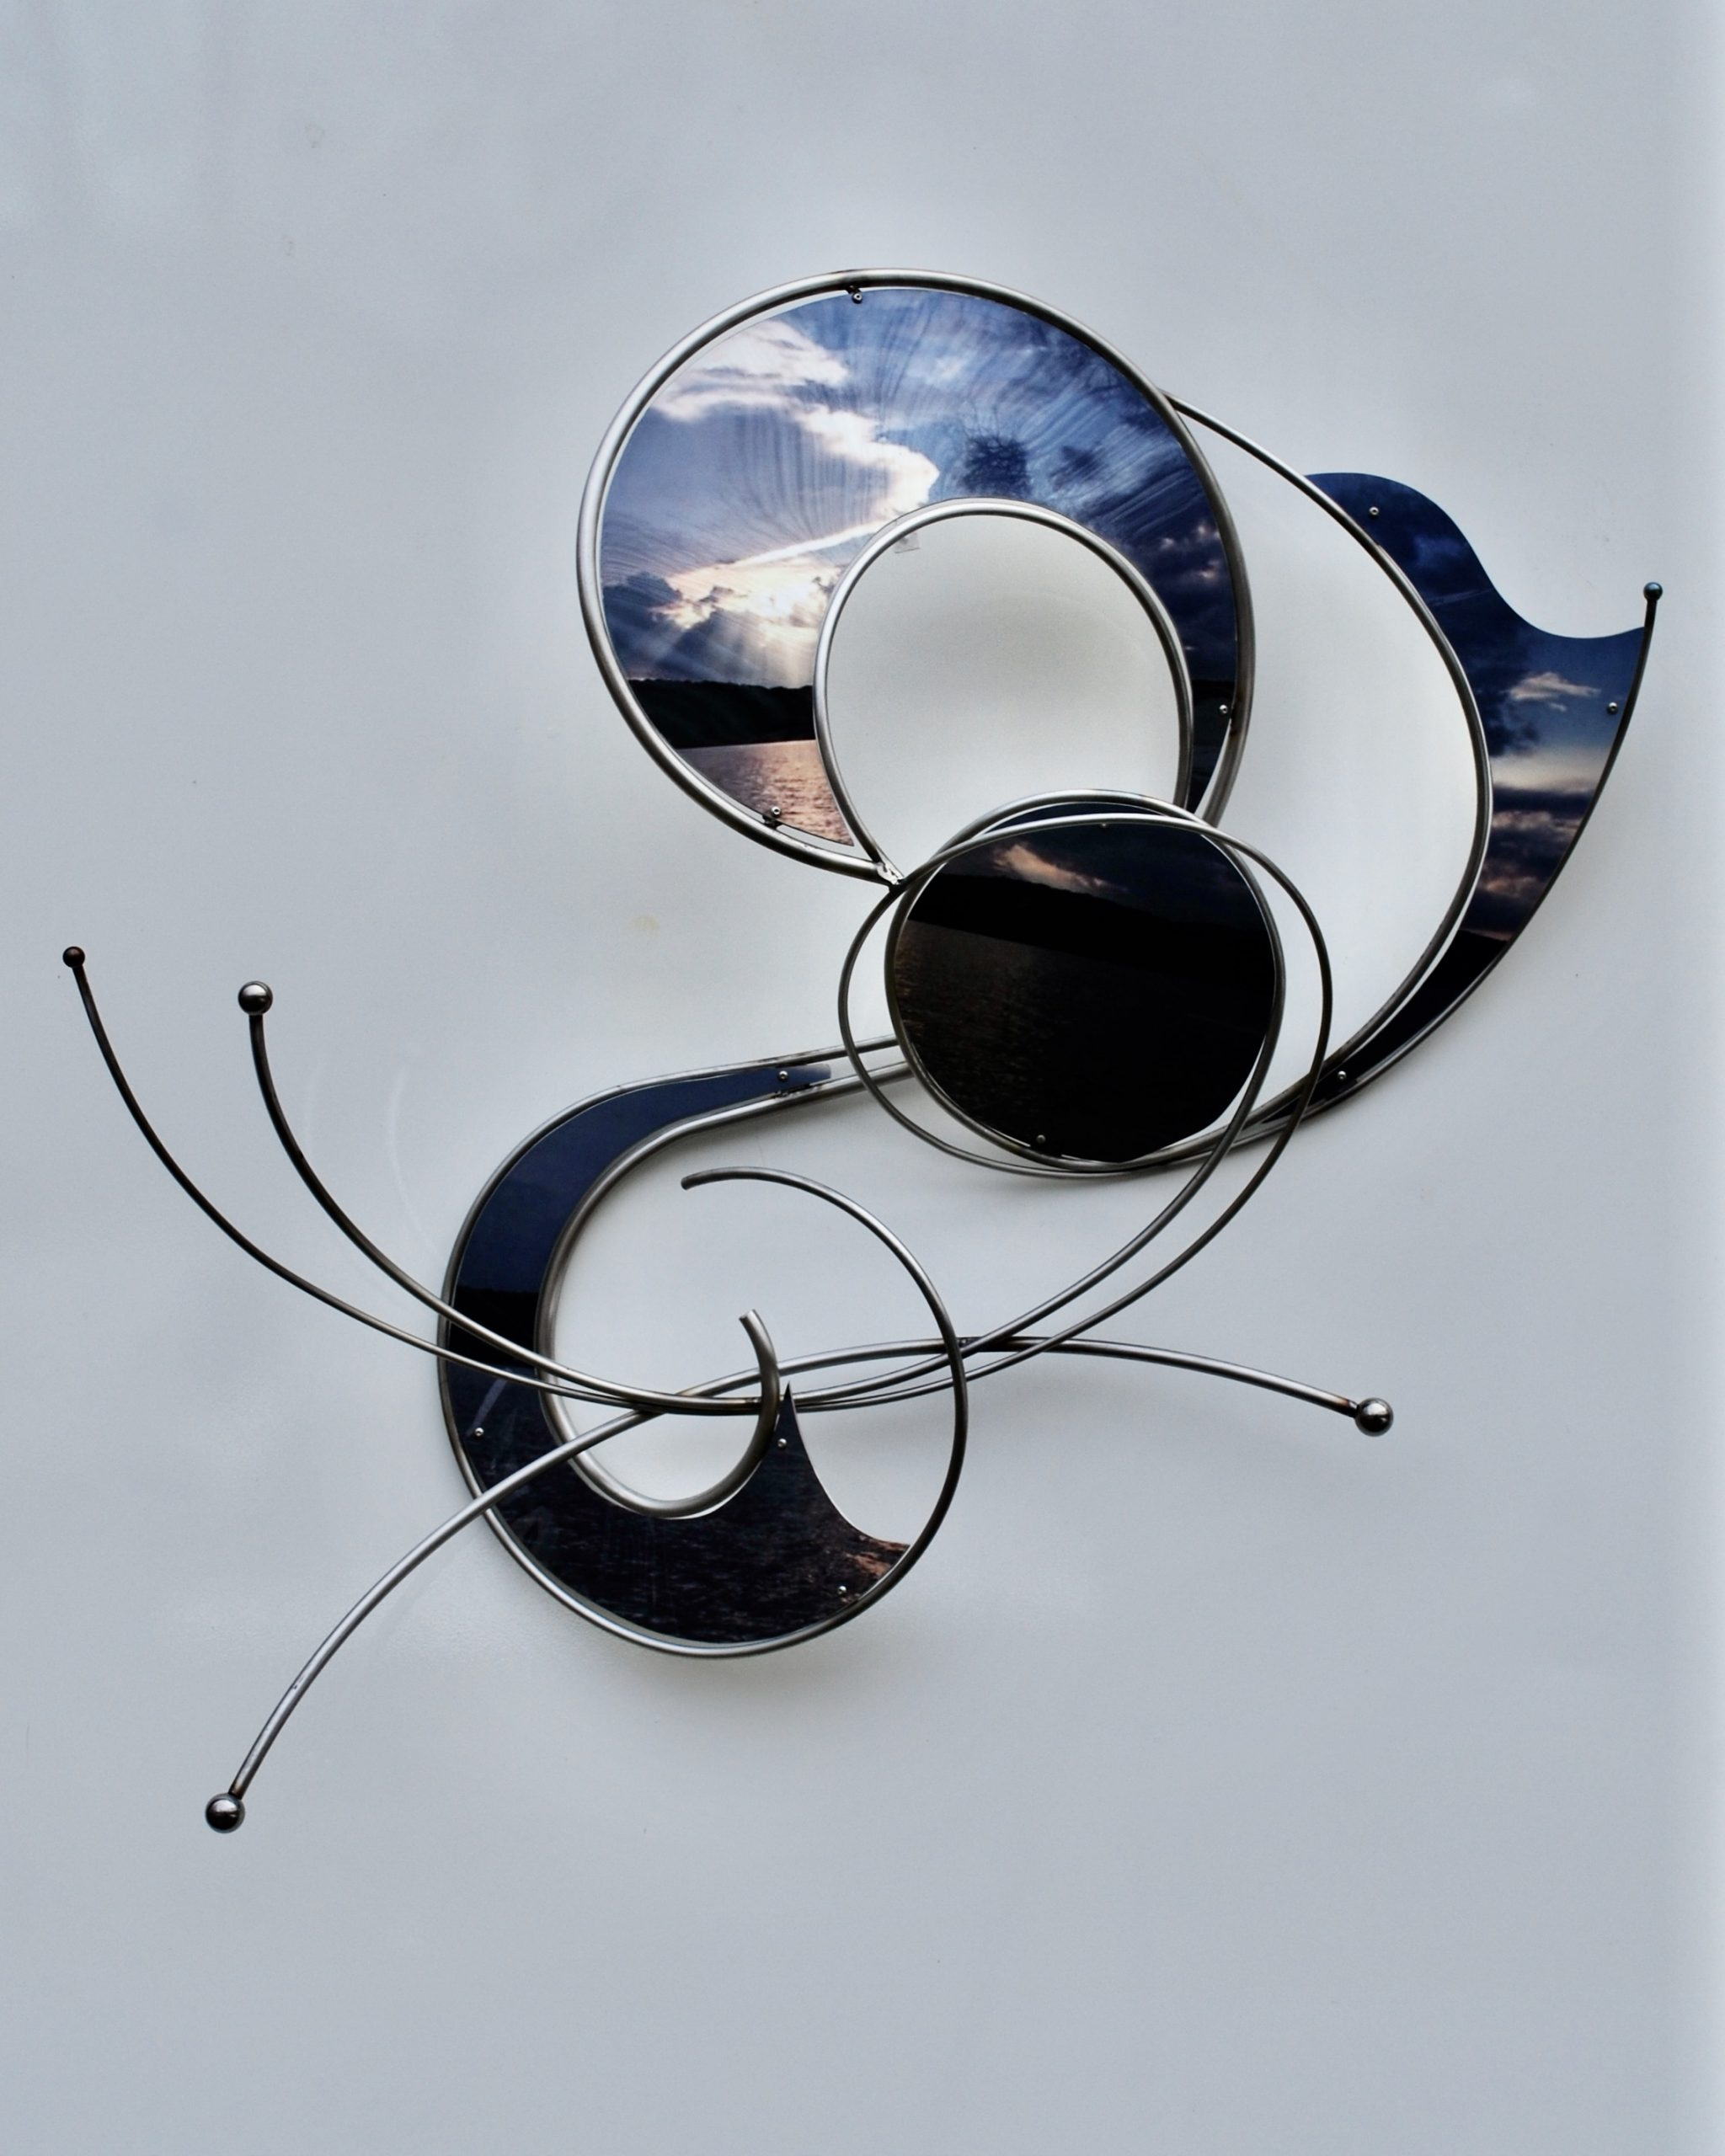 JL2021-2 Blue Sky 31%22x27'xx11%22 $3800.00 Stainless Steel and Printed Aluminum-ac6e7c9b